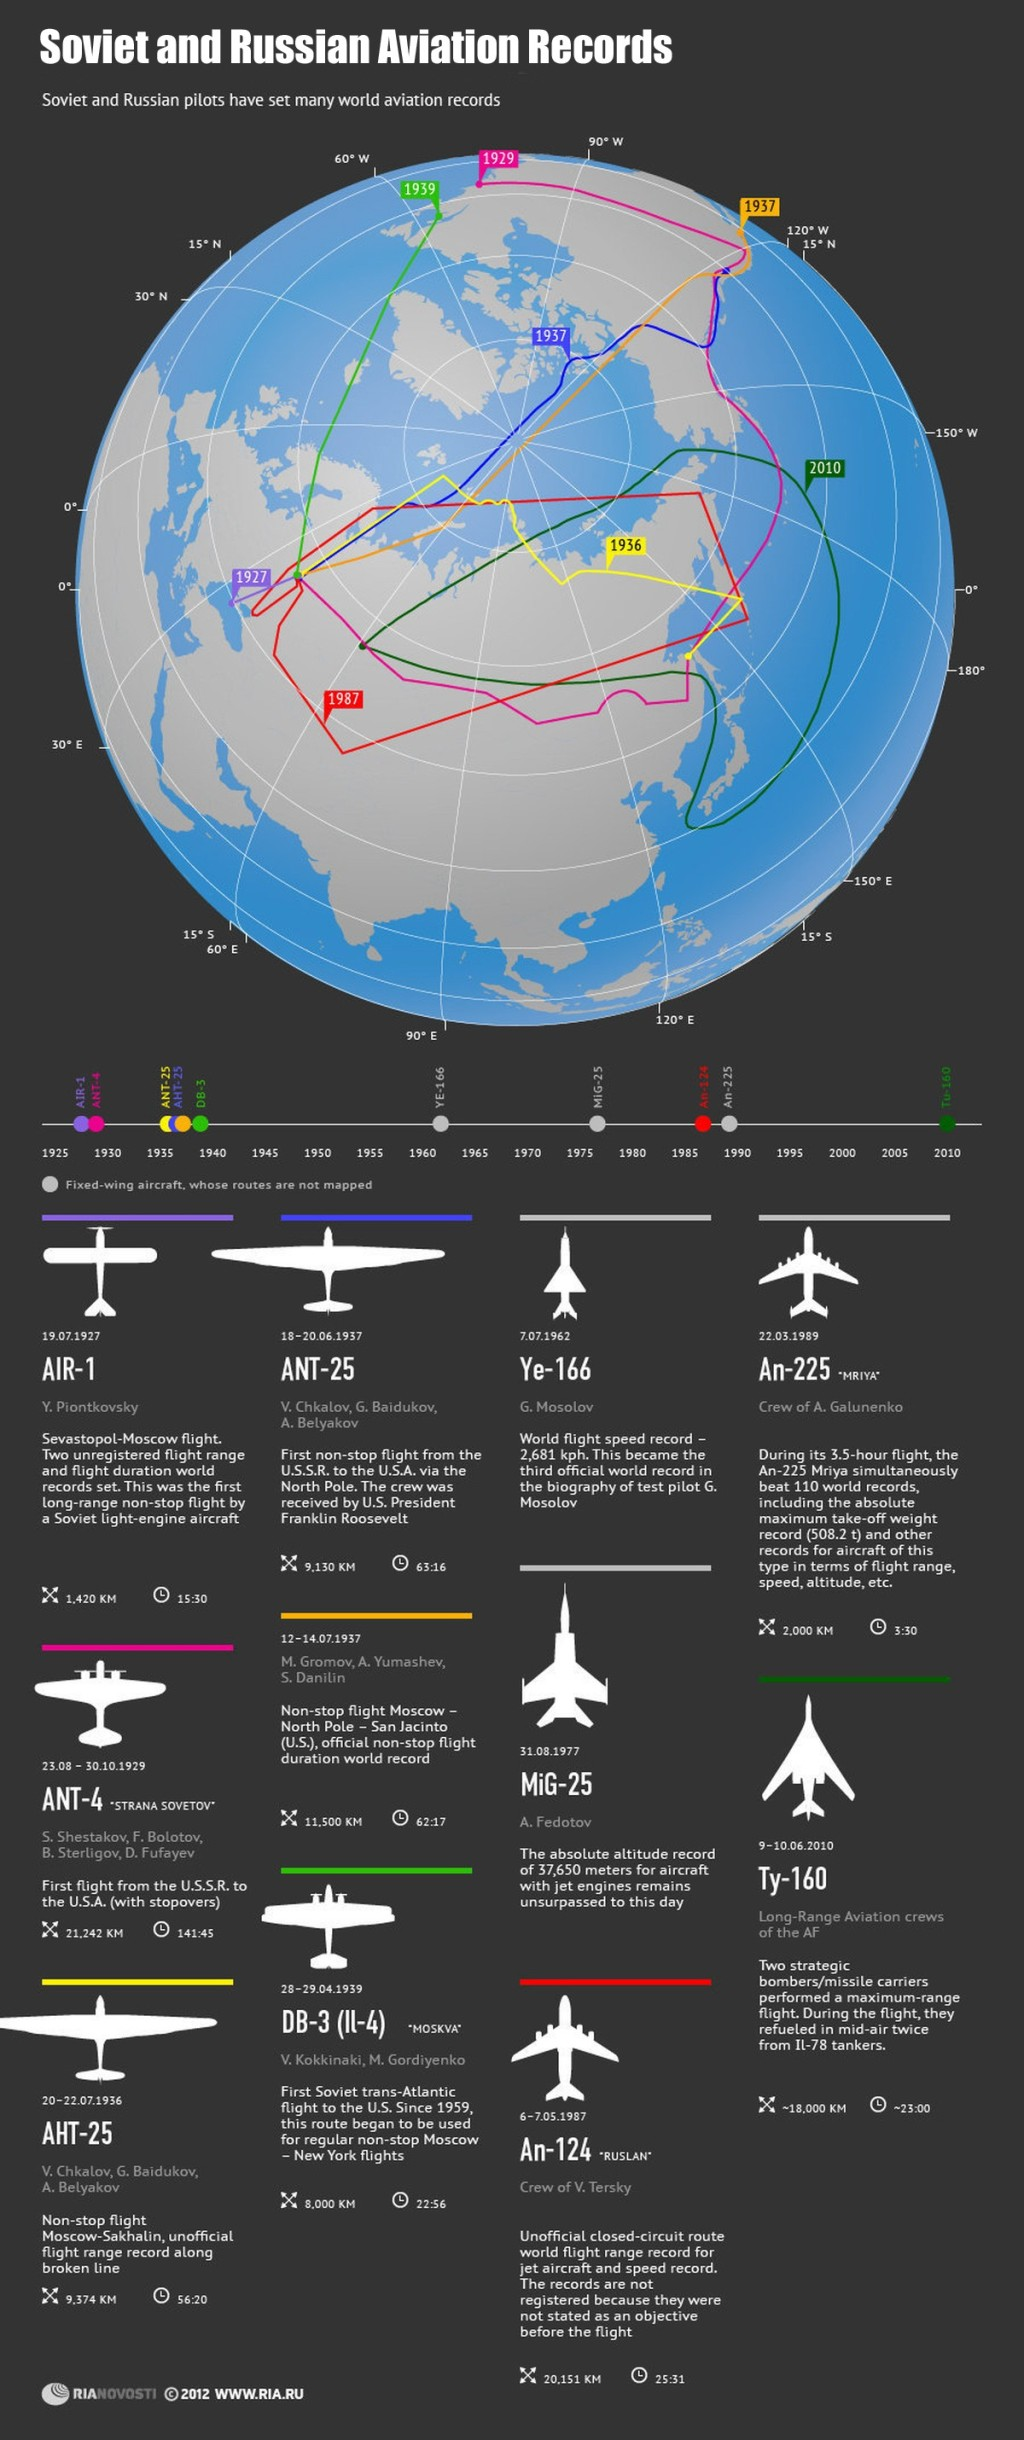 00 RIA-Novosti Infographics. Soviet and Russian Aviation Records. 2012